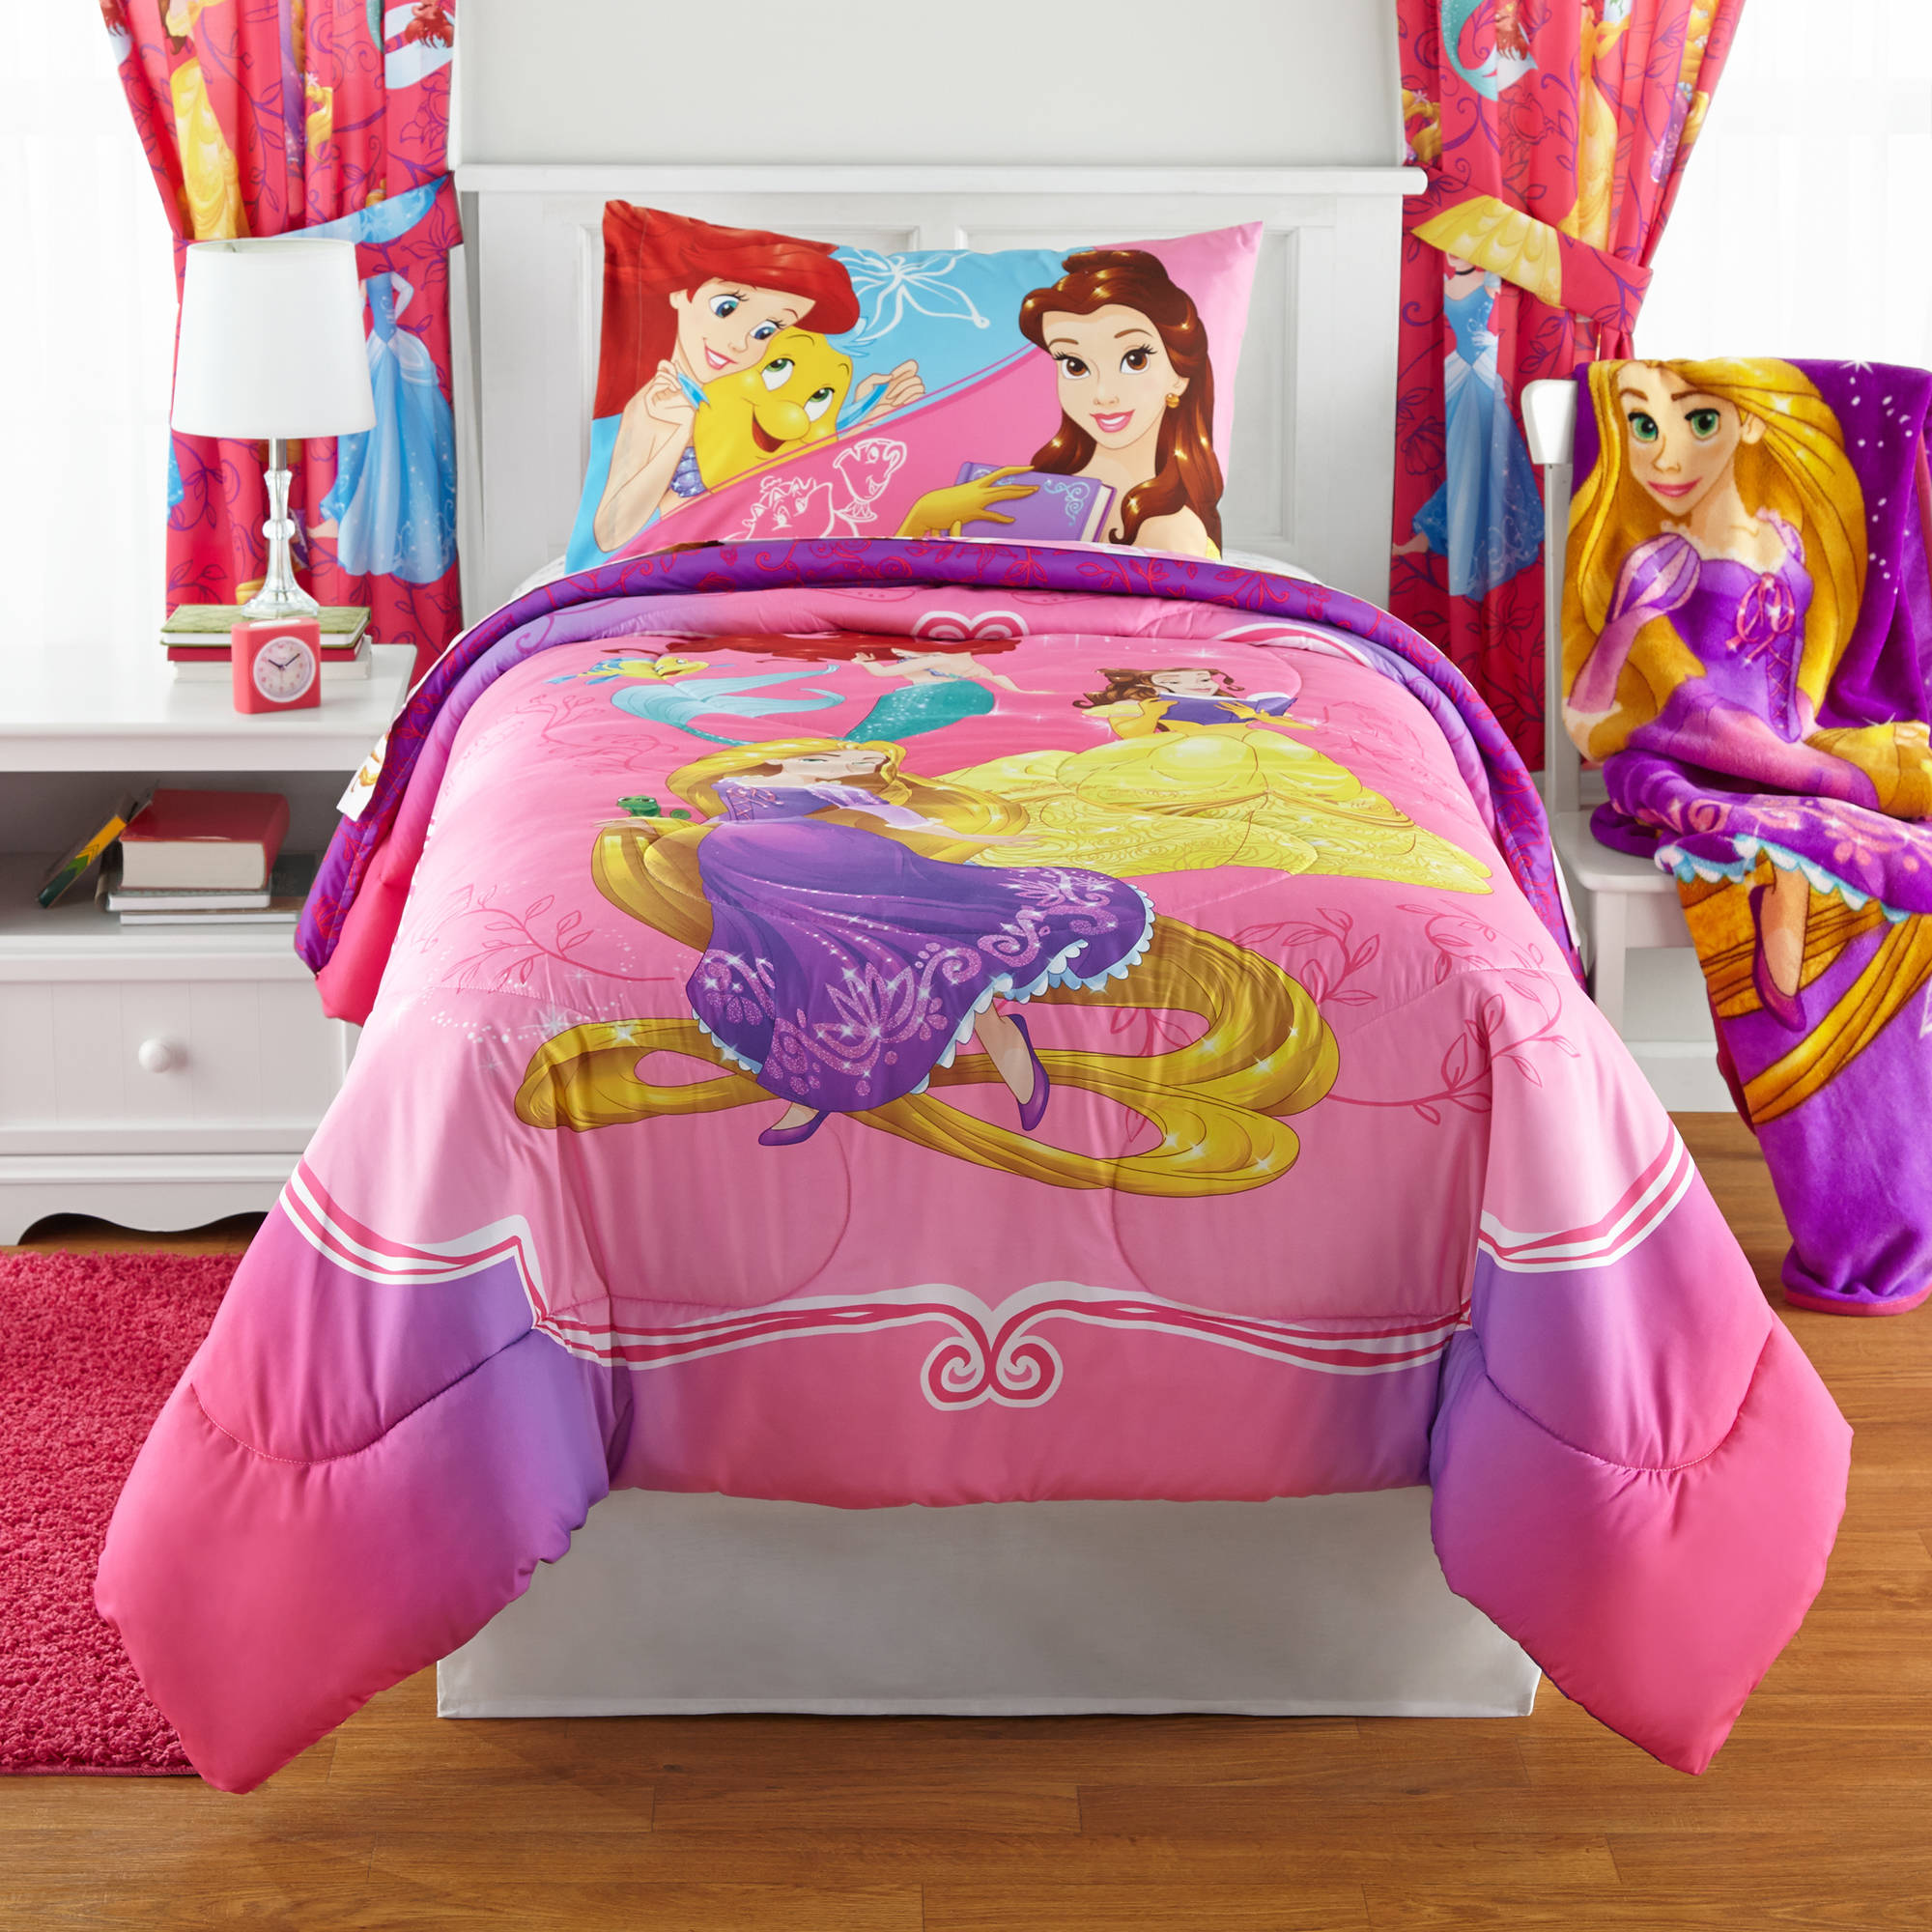 Daybed bedding for little girls - Girls Kids Comforters